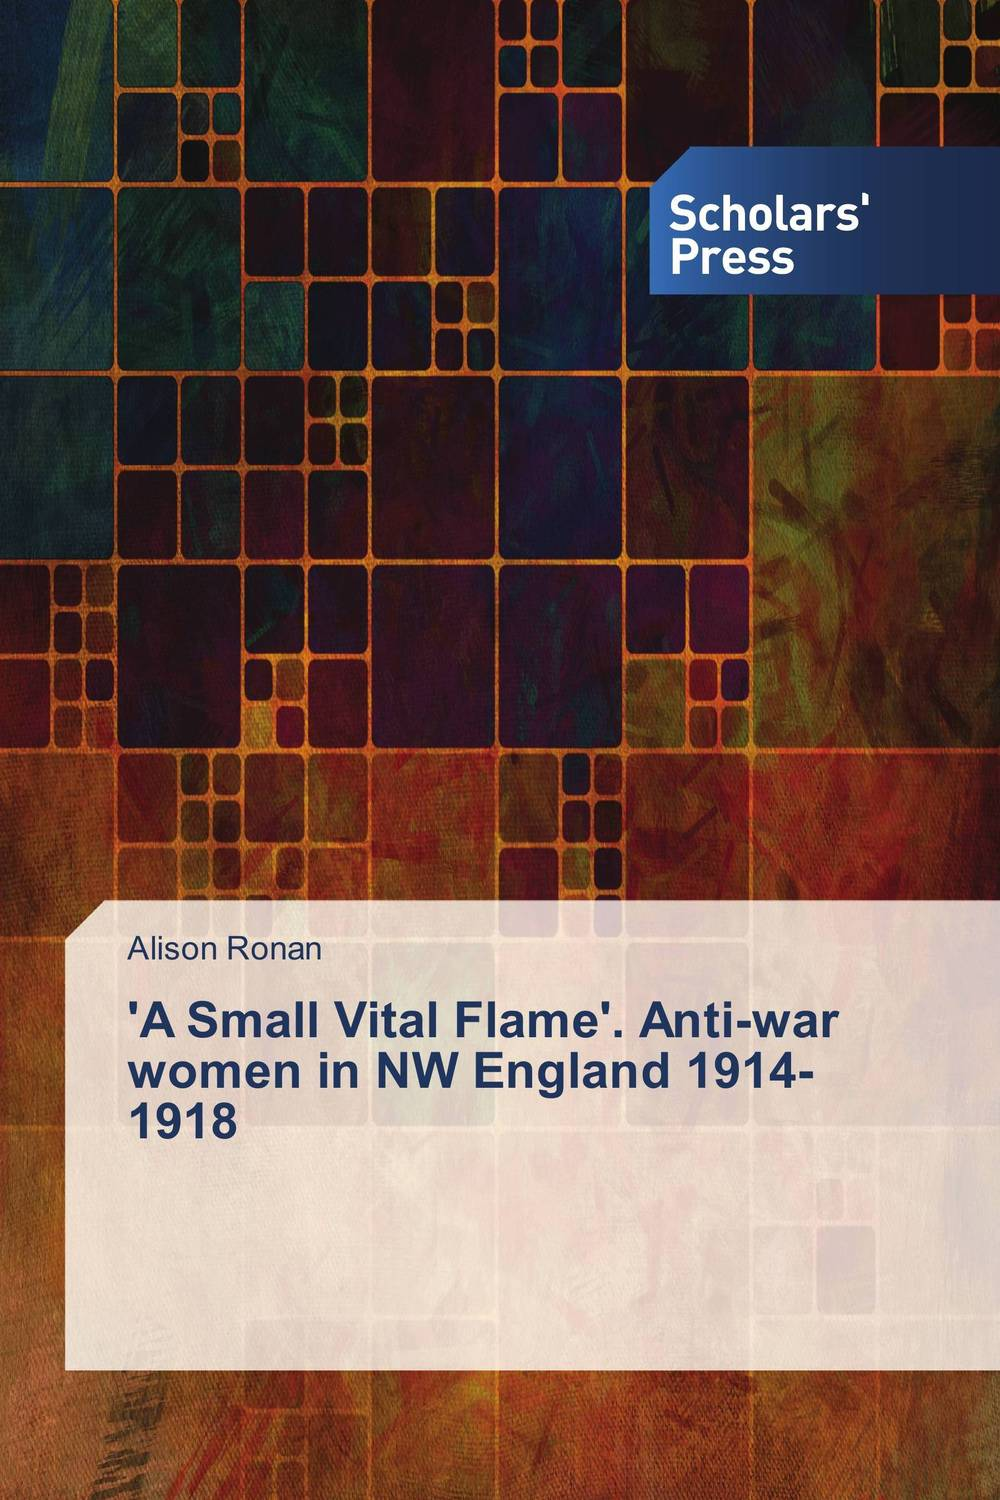 'A Small Vital Flame'. Anti-war women in NW England 1914-1918 the history of england volume 3 civil war